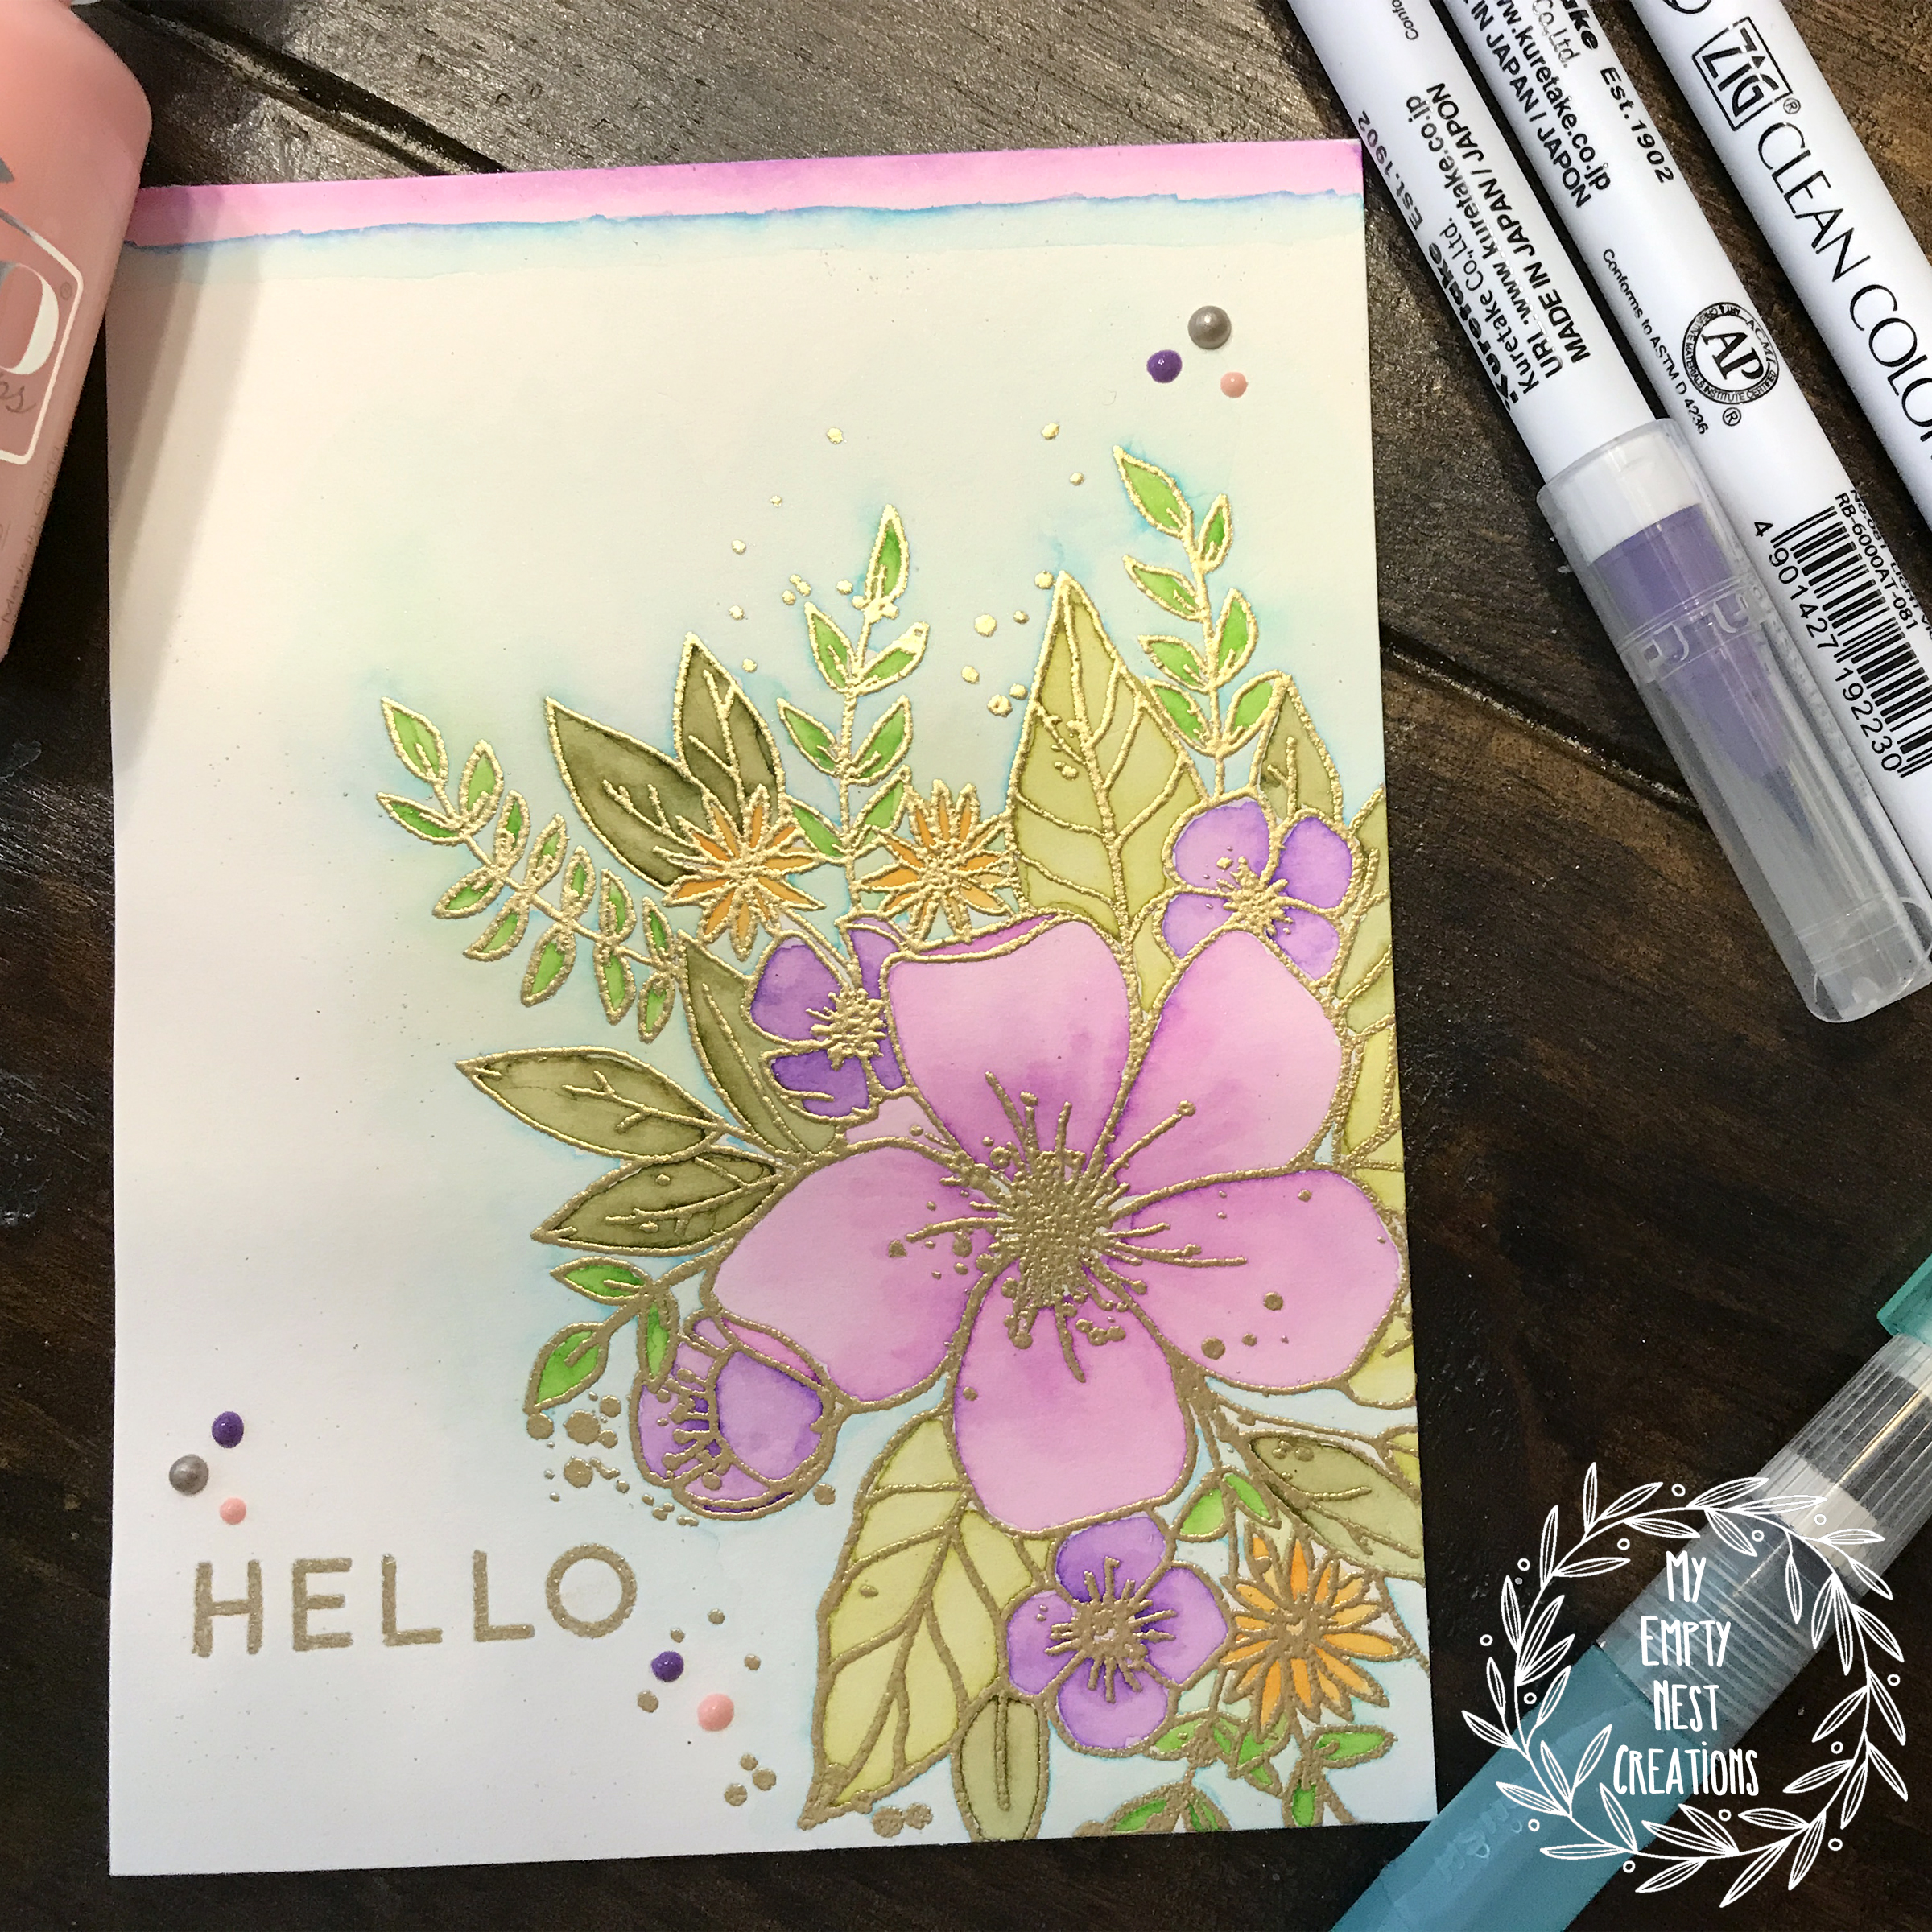 My Empty Nest Creations Card using Concord & 9th's Hello Lovely Stamp Set